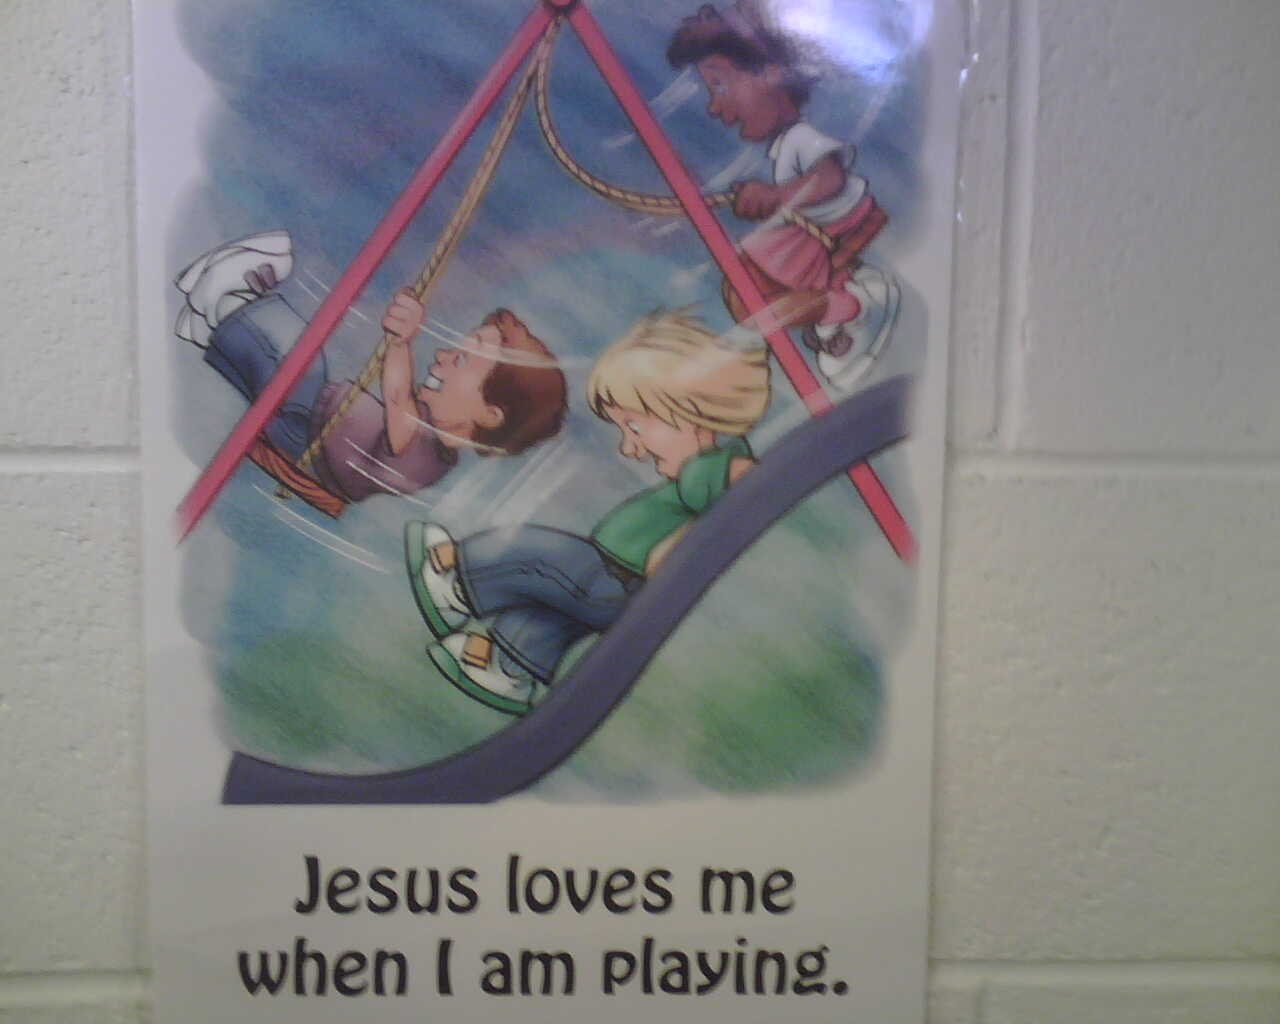 Jesus loves me when I'm playing.